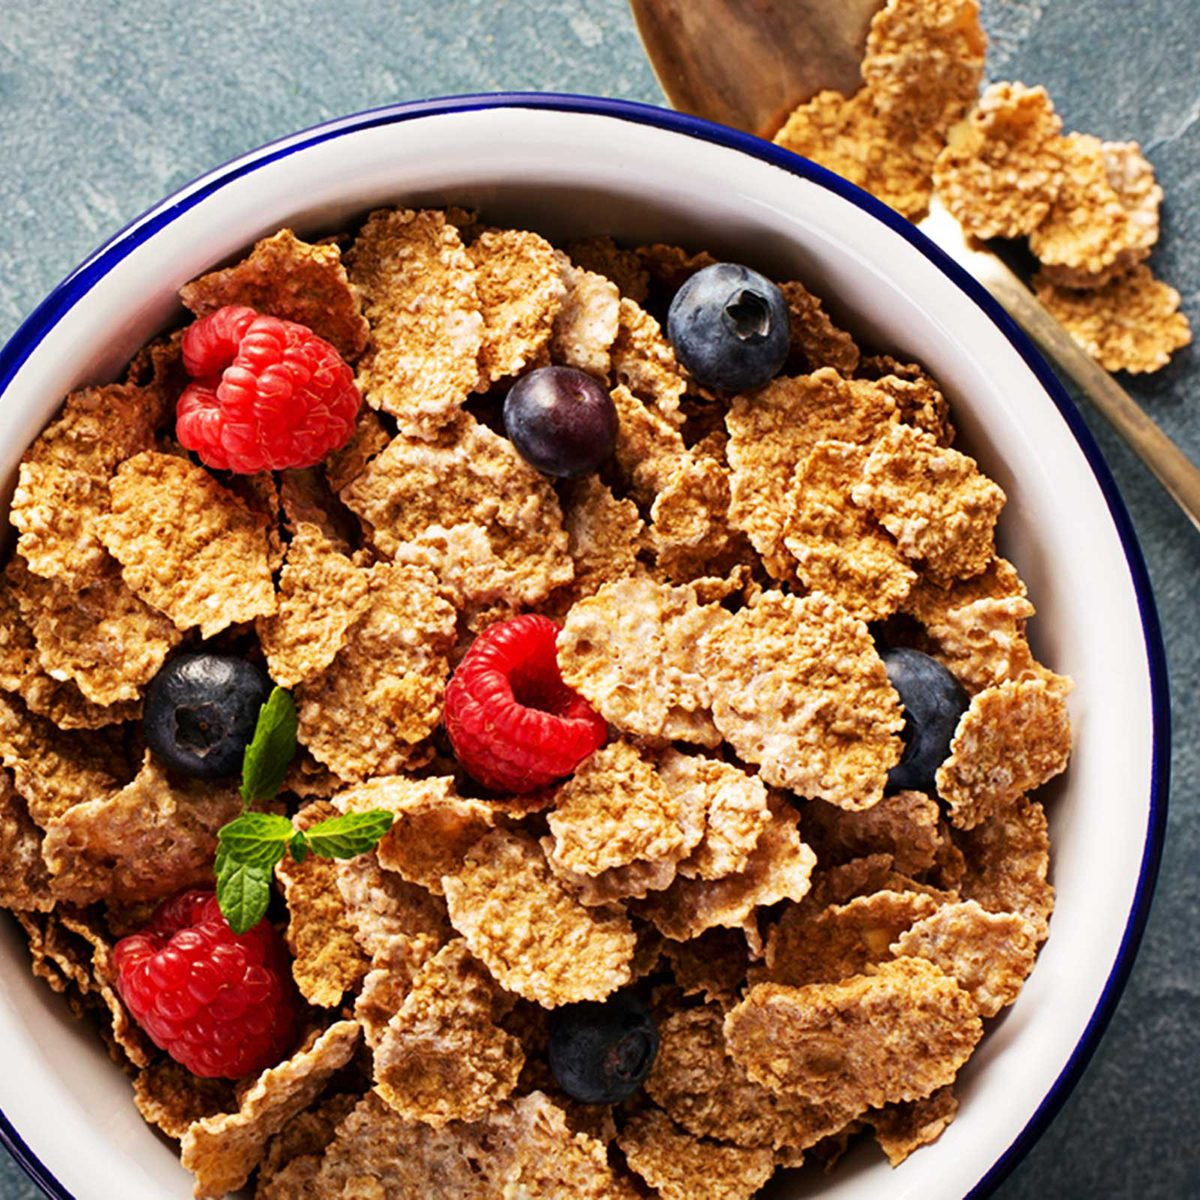 Cereal with fresh berries